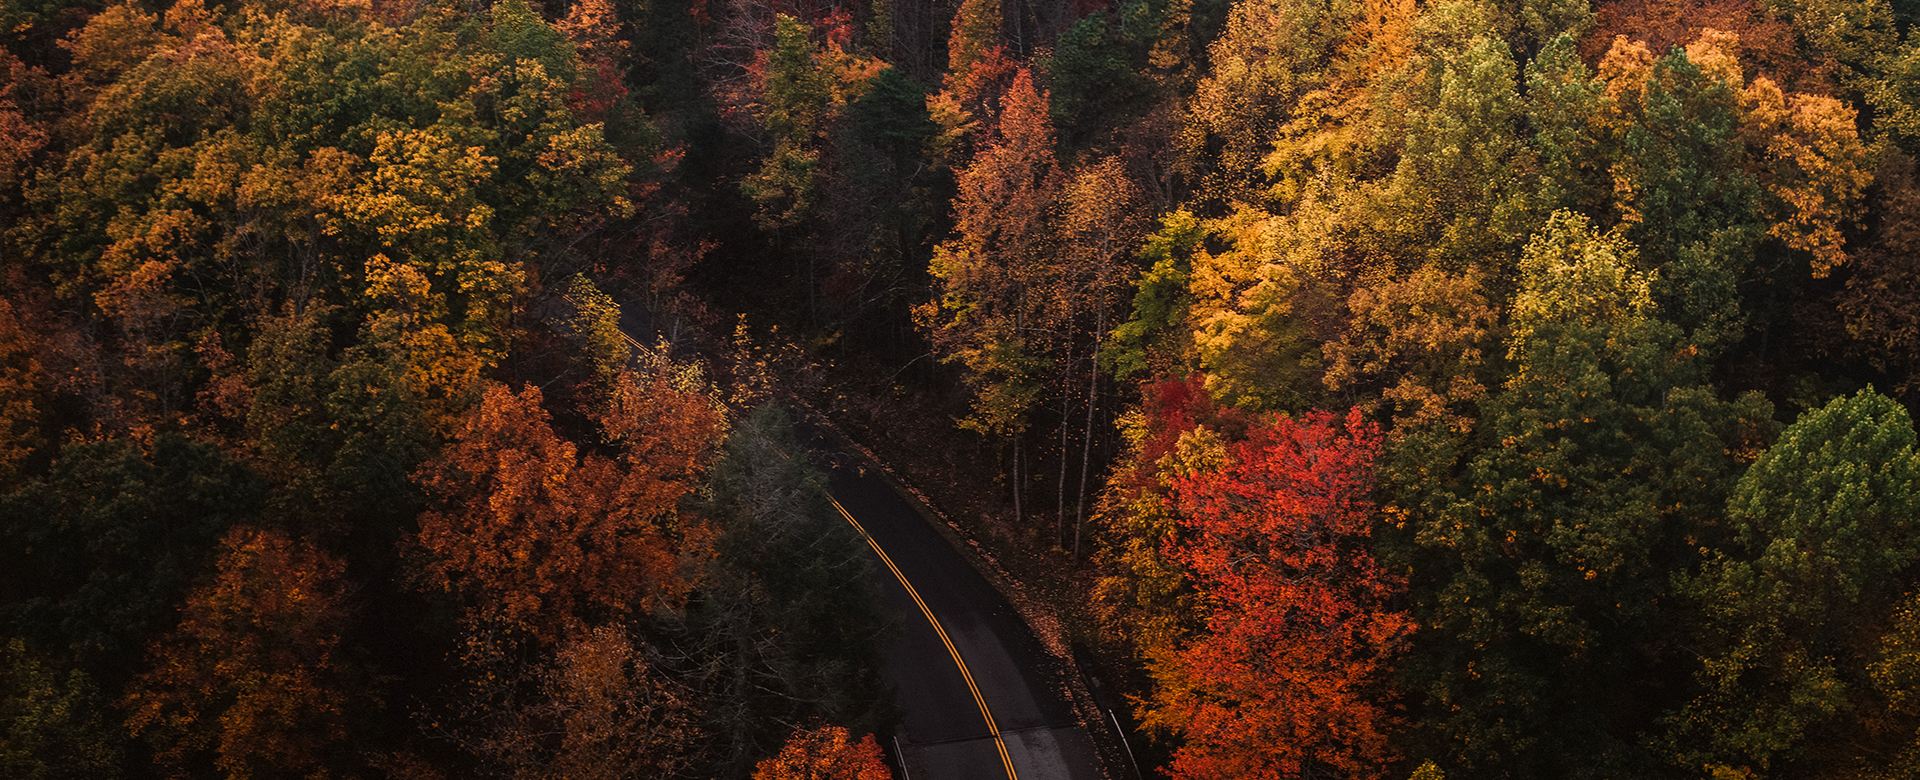 aerial view of colorful trees in the fall